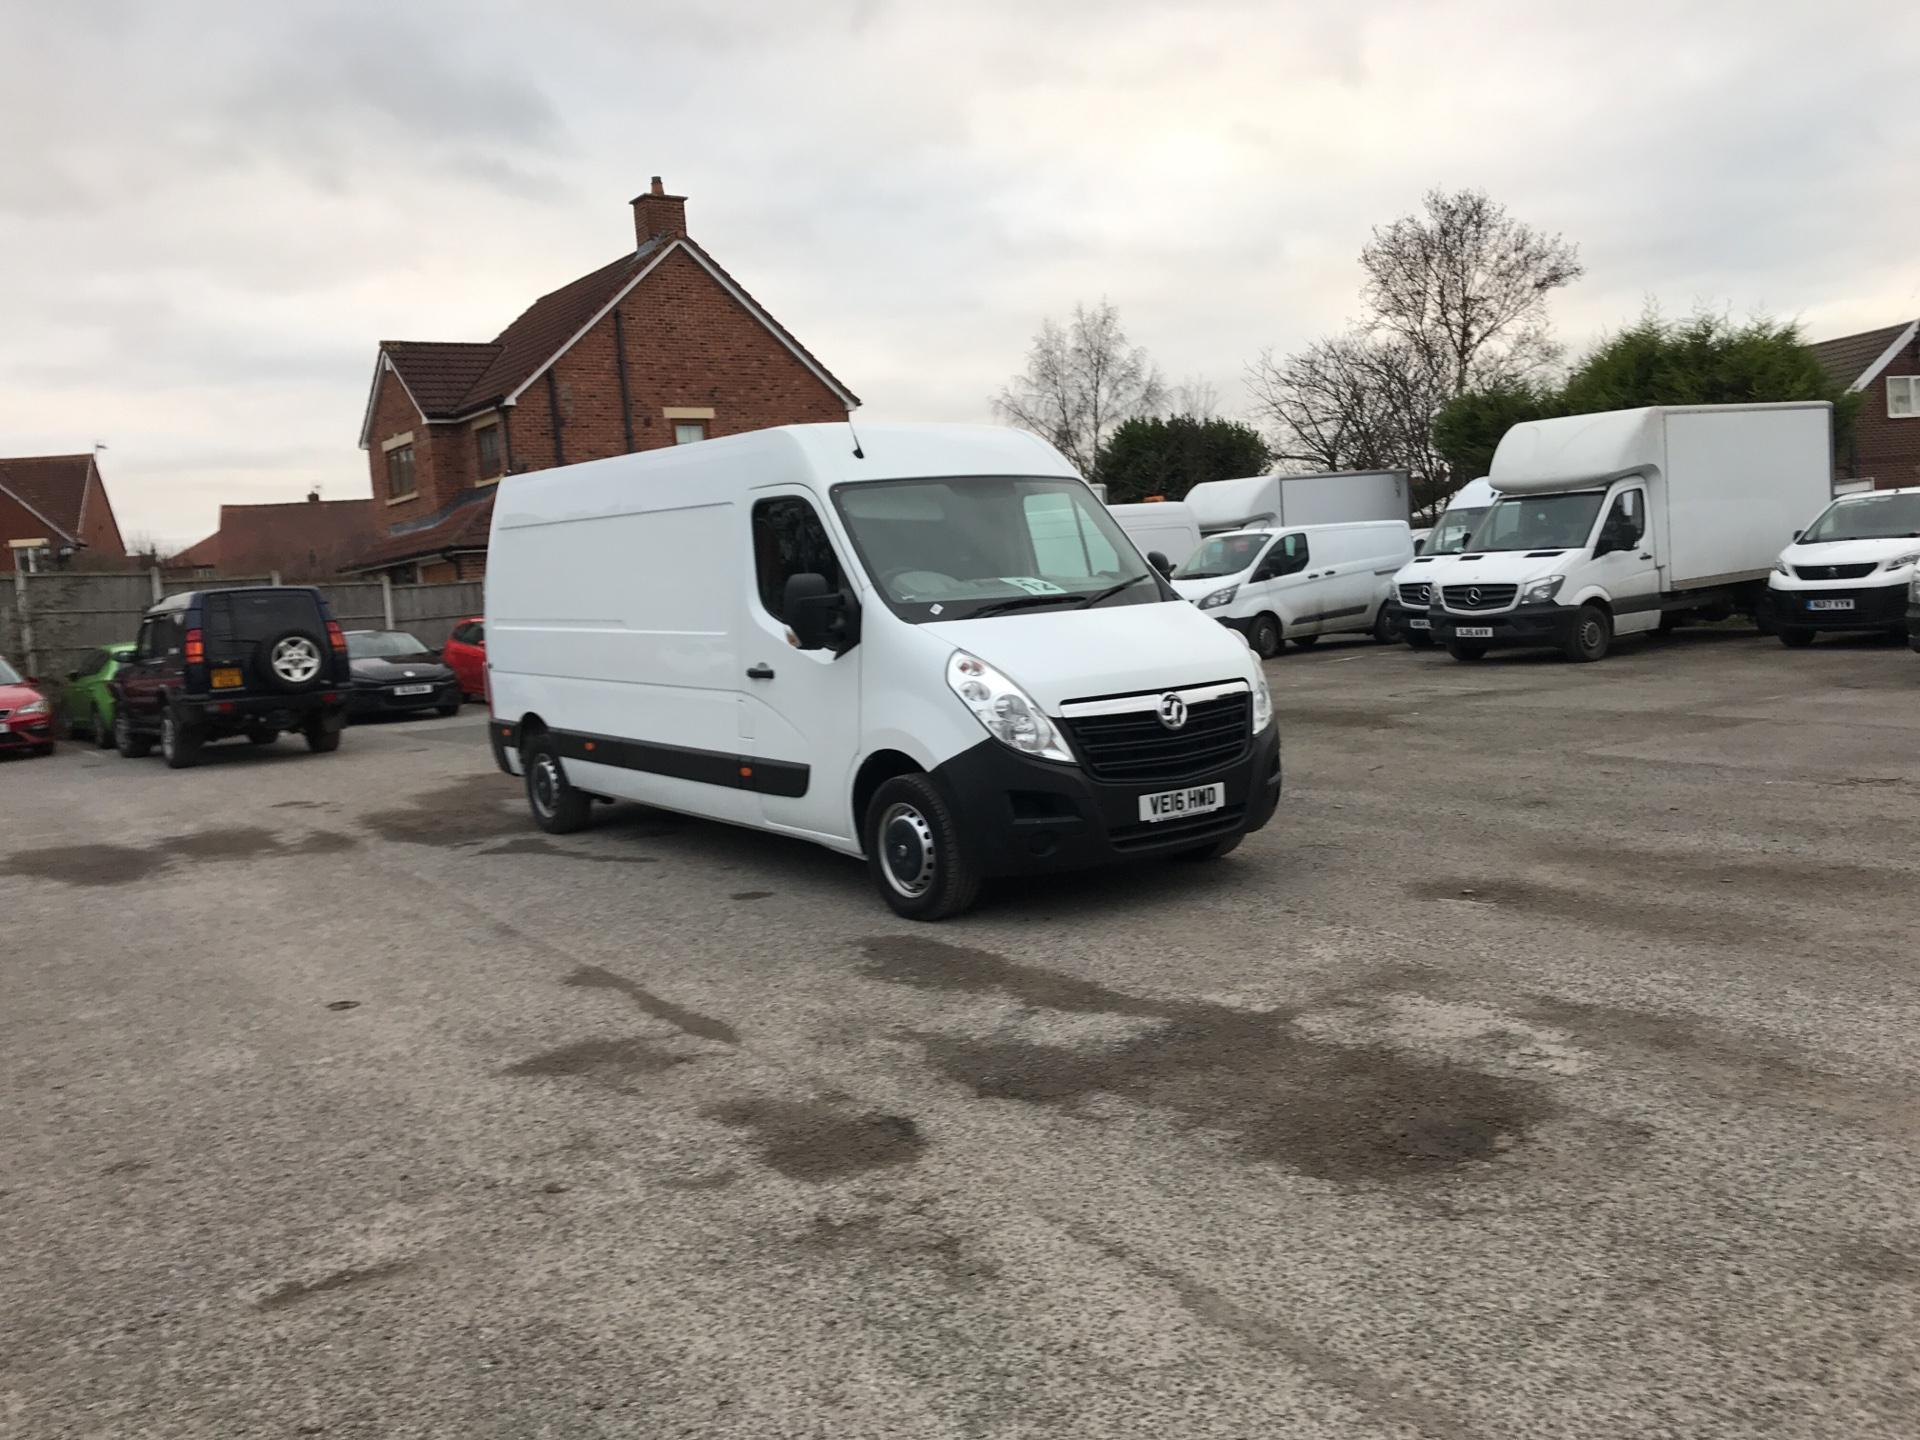 2016 Vauxhall Movano 35 L3 H2 125PS EURO 5 (VE16HWD)